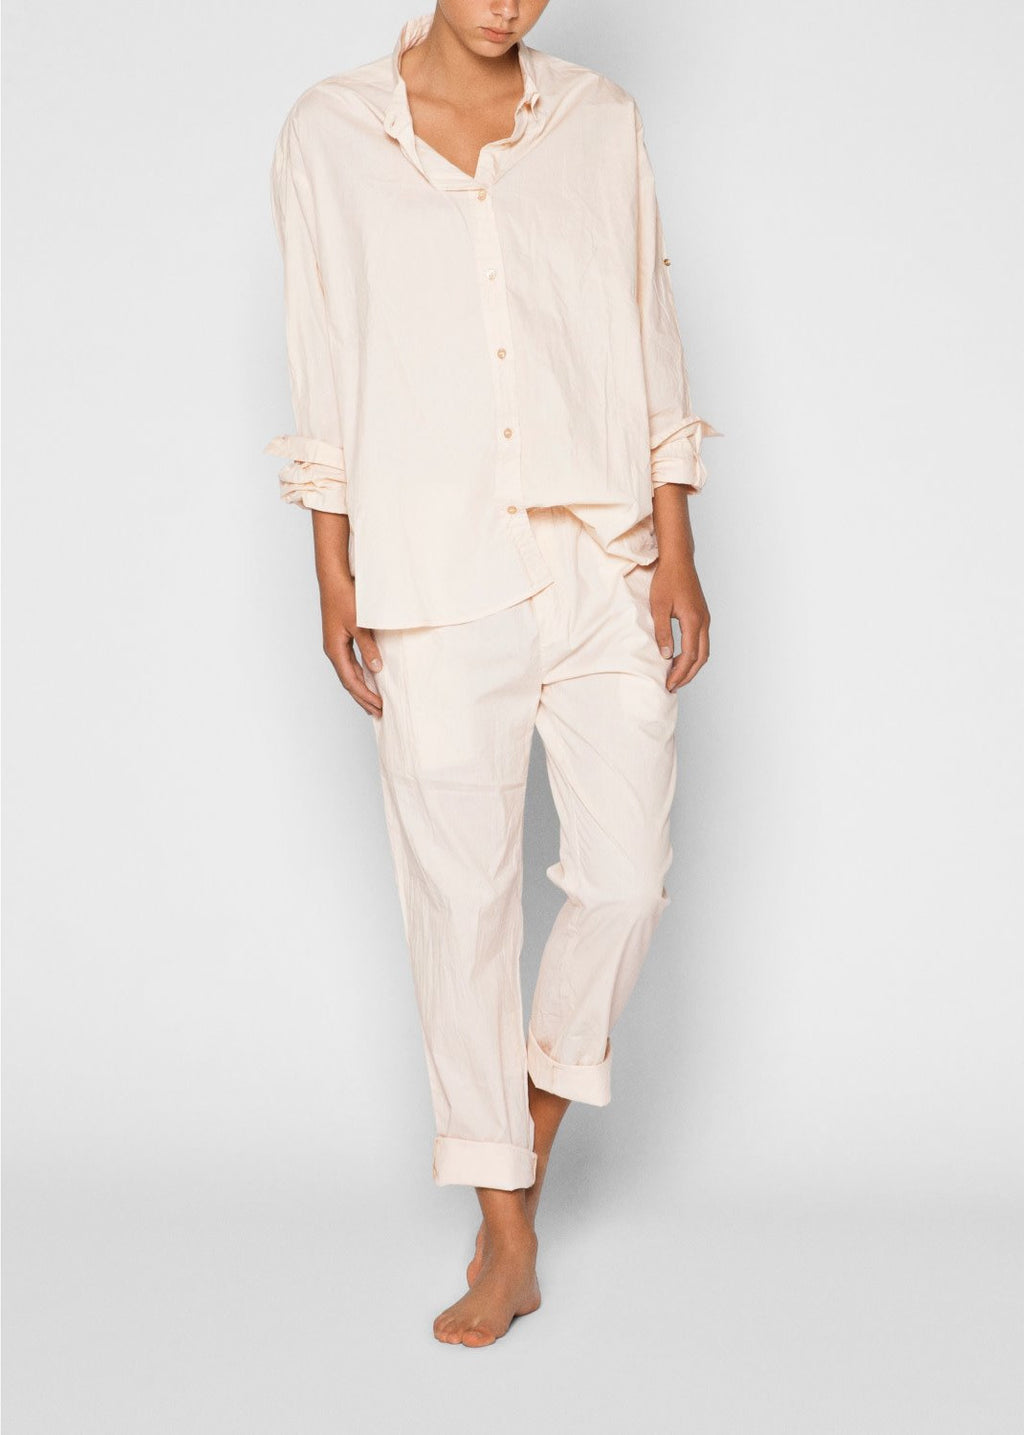 model in blush colored button down and pants